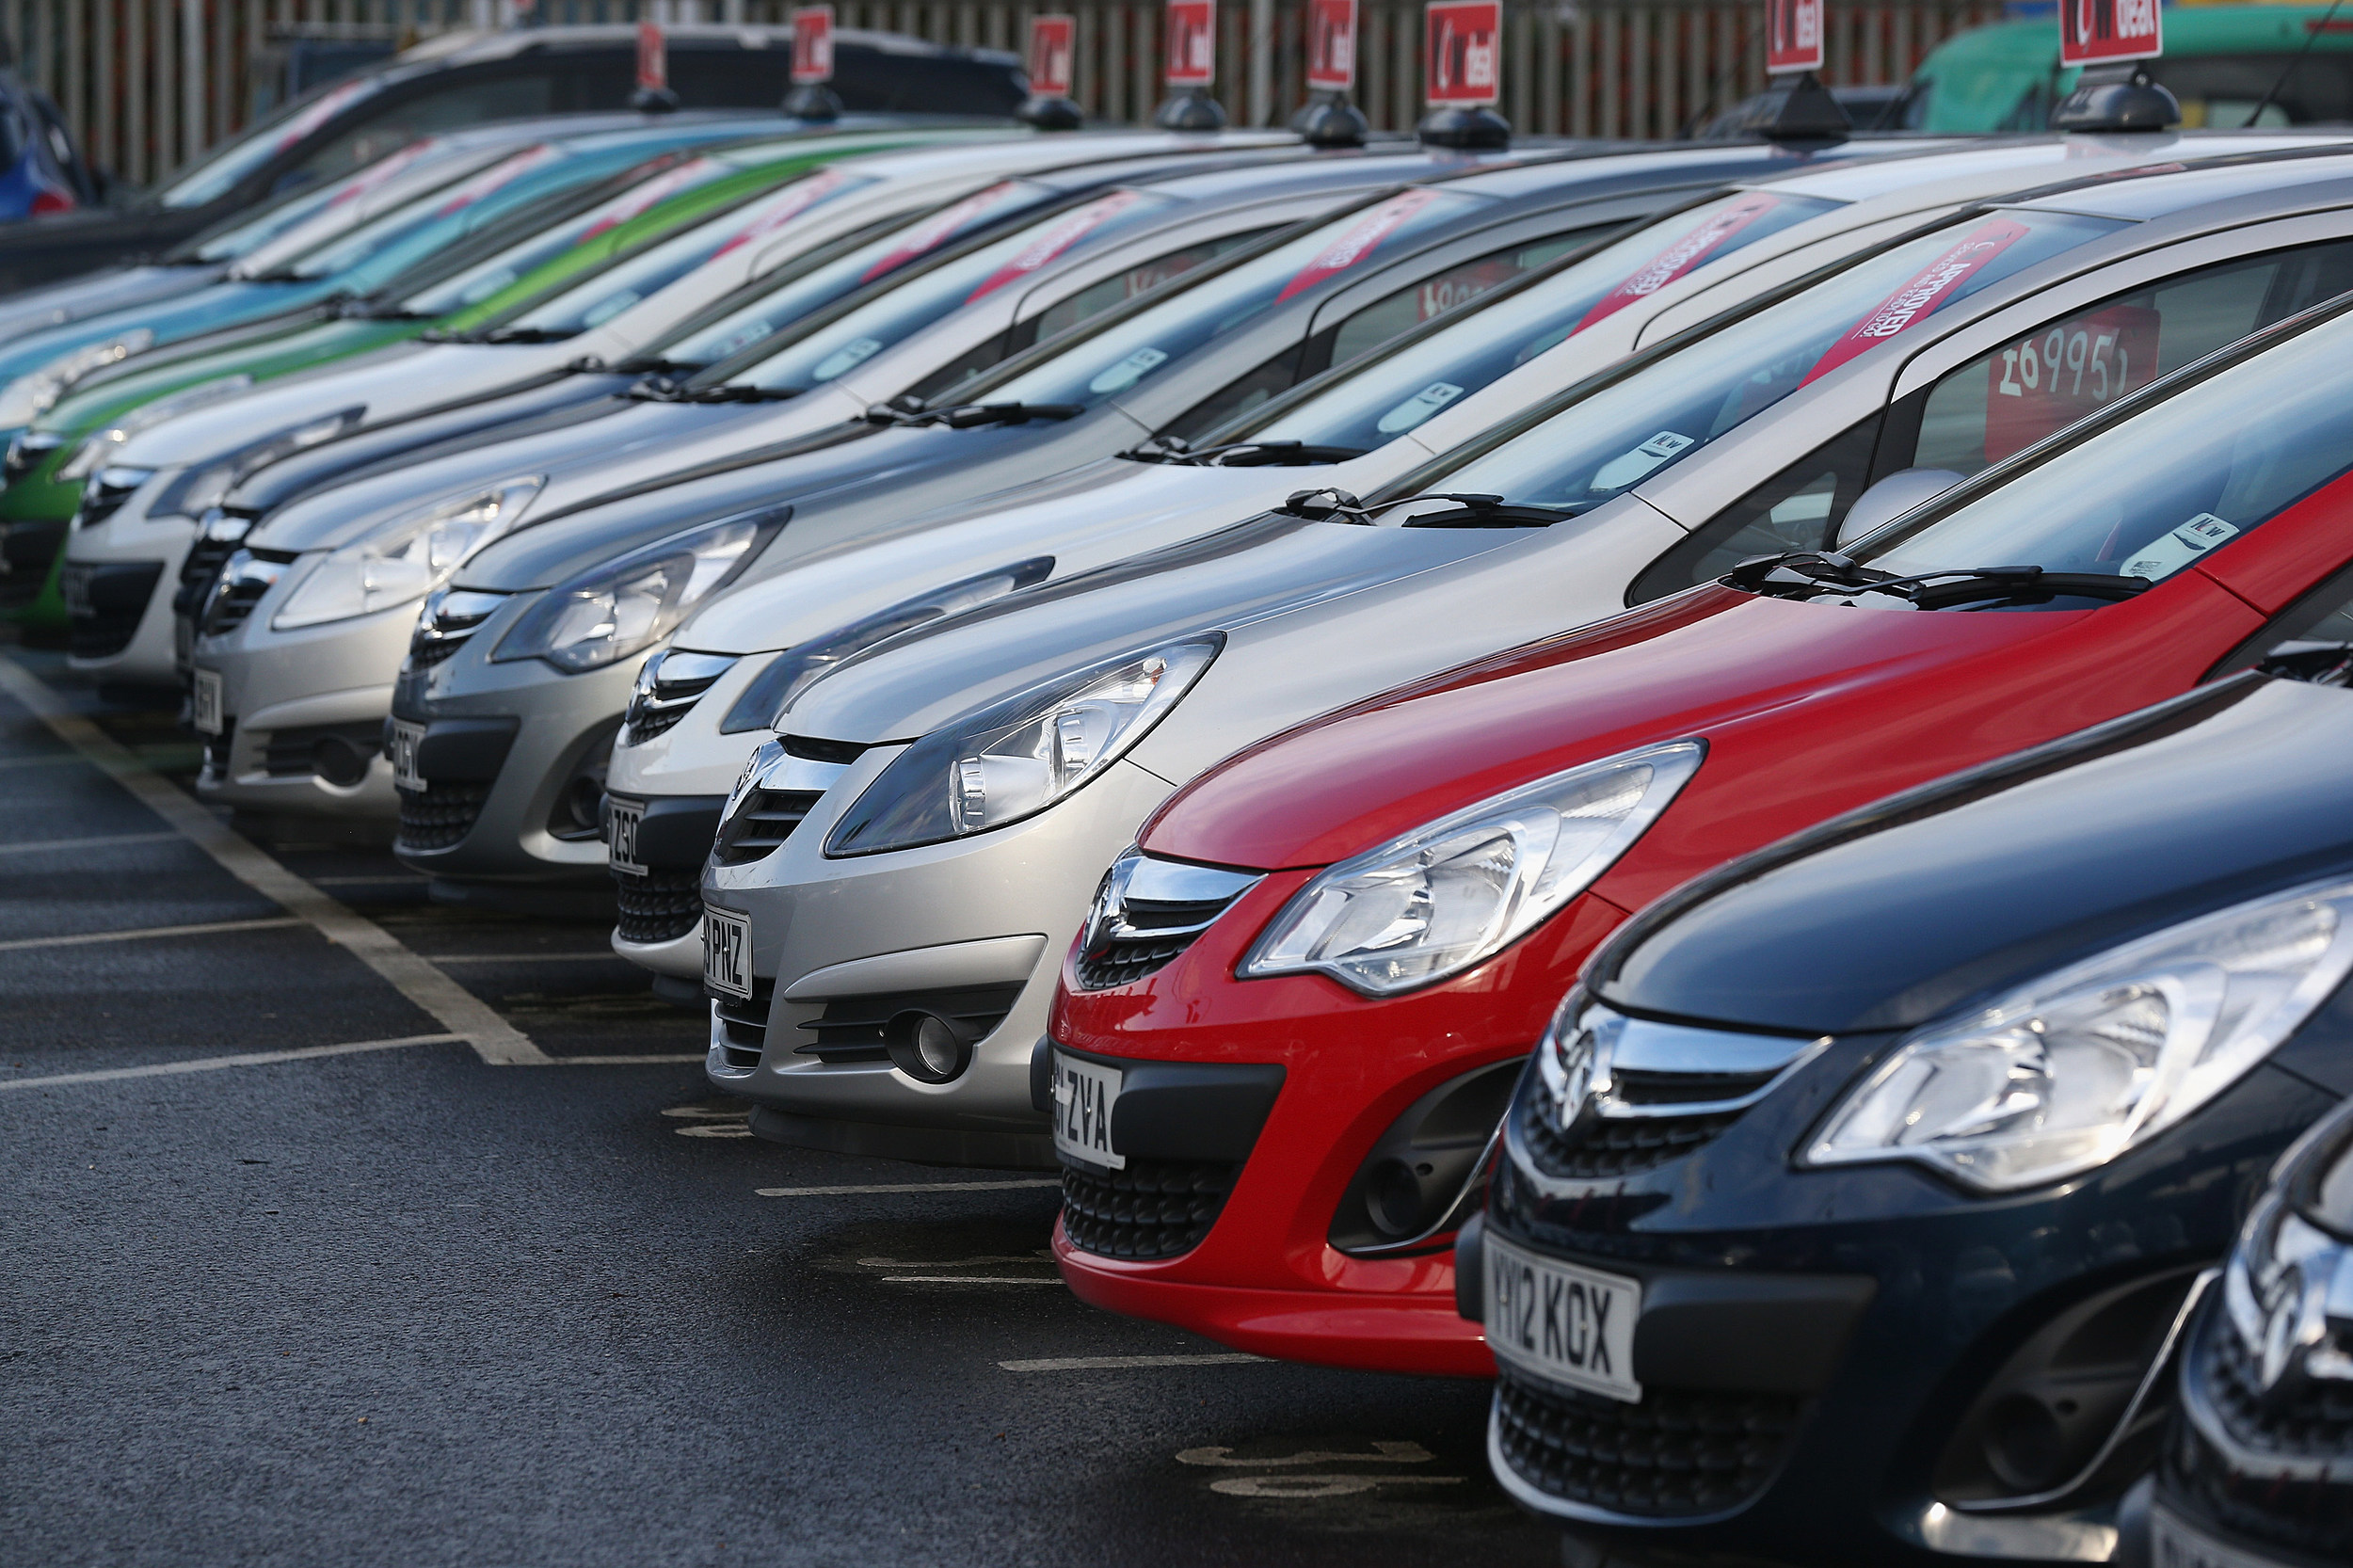 New Car Sales Rise In 2013 To Pre-Financial Crisis Levels